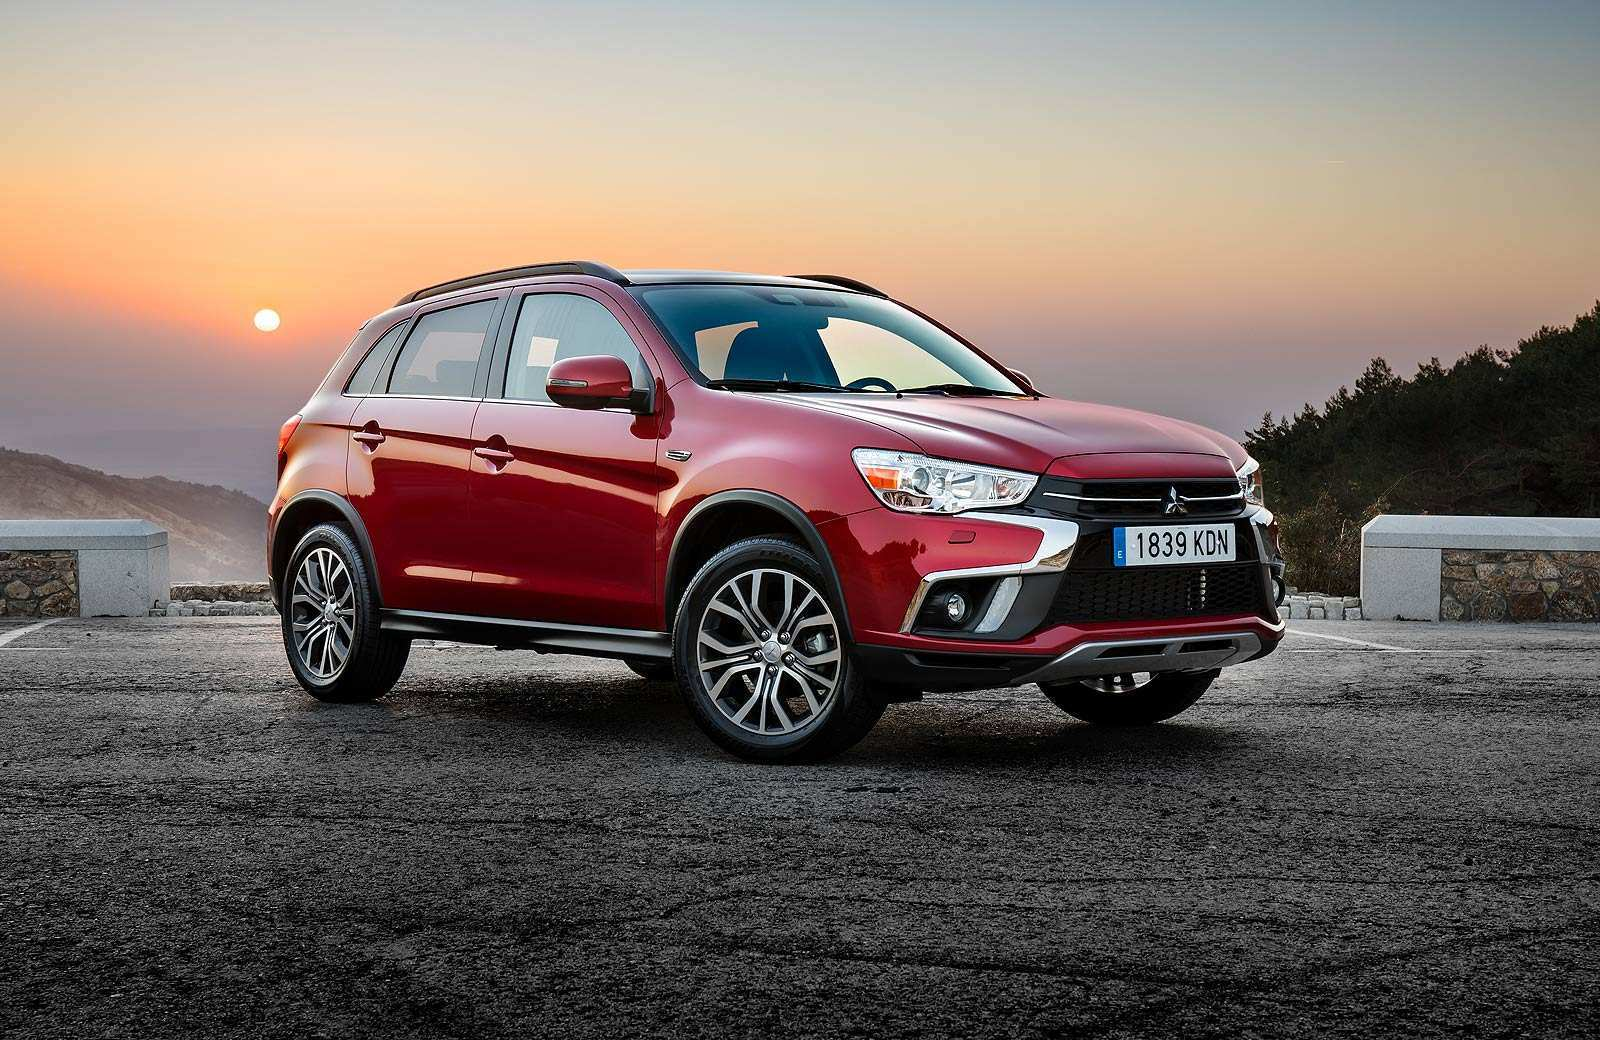 82 Best Mitsubishi Asx 2020 Ficha Tecnica Pricing